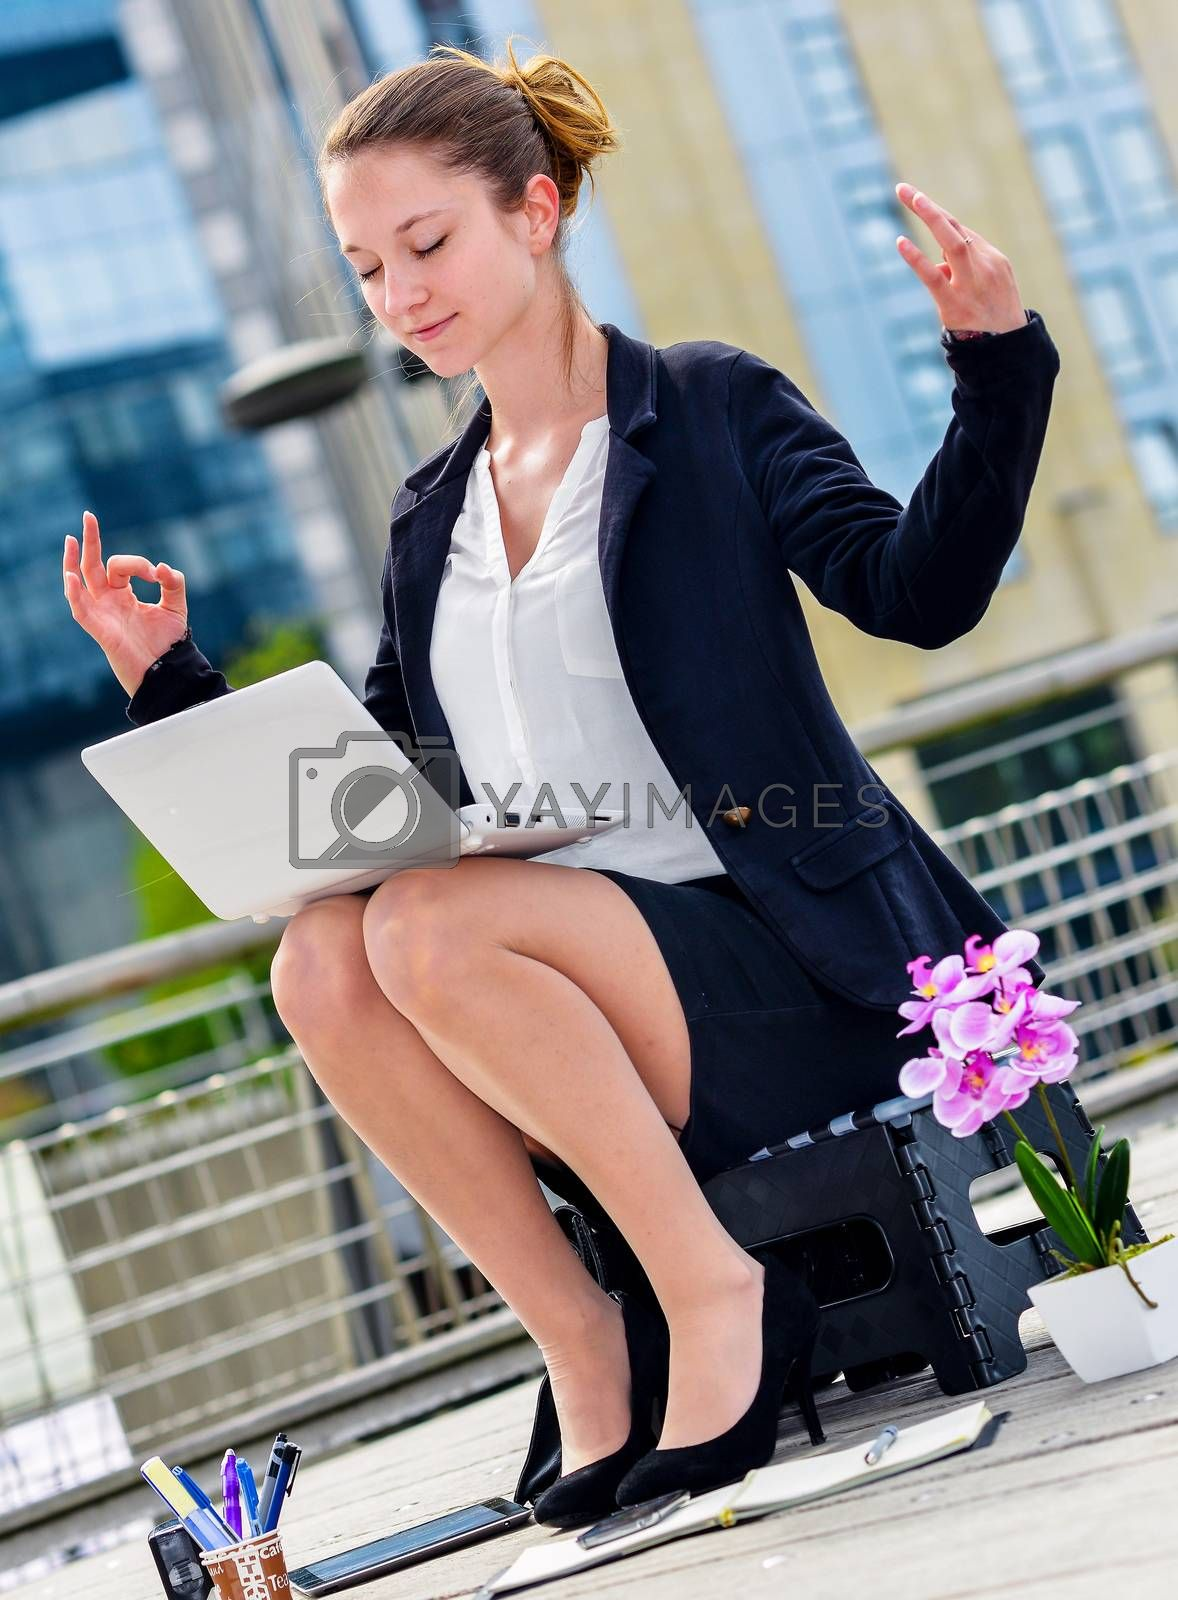 Royalty free image of Junior executive of company doing yoga for relaxation by pixinoo